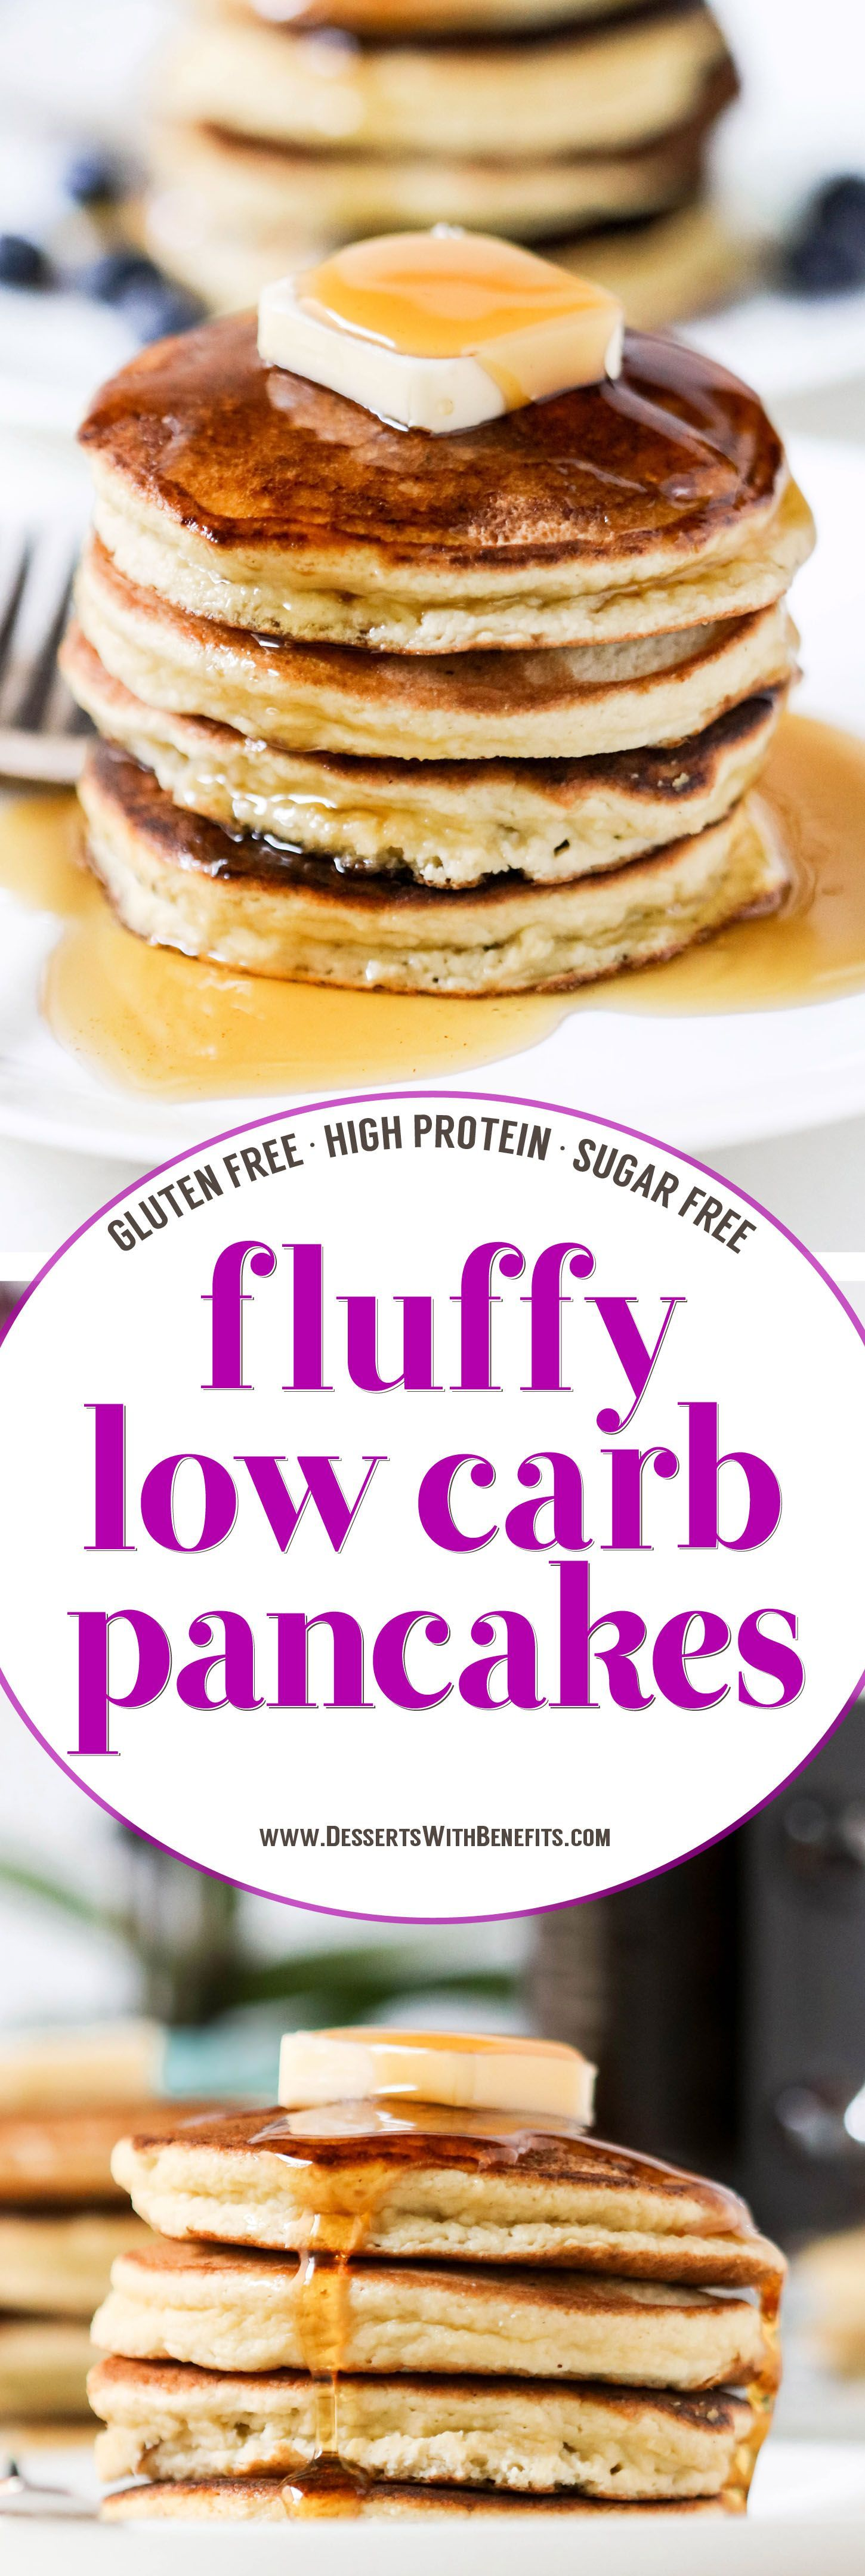 Low Carb Coconut Flour Pancakes These fluffy Low Carb Coconut Flour Pancakes are THE best way to start your day. One bite and you'll wonder how these Paleo Pancakes are sugar free, low carb, high protein, high fiber, gluten free, and dairy free! These filling Low Carb Pancakes have just 220 calories plus 15g of protein and no sugar added. This is a